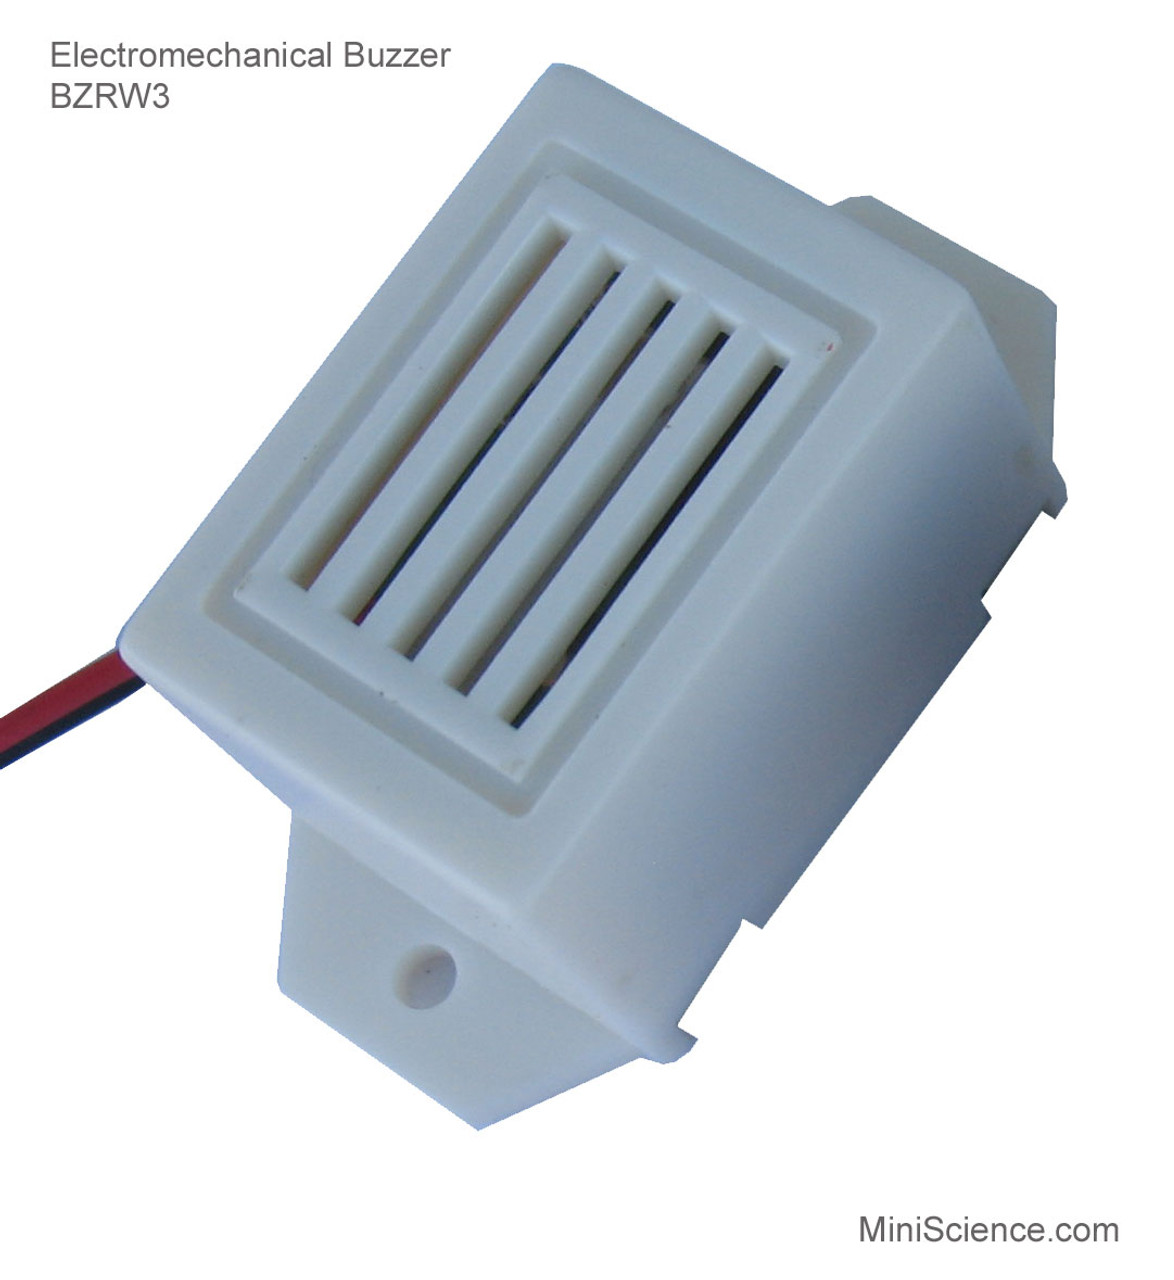 Low voltage buzzer requires 1.5 volt up to 3 volts to operate